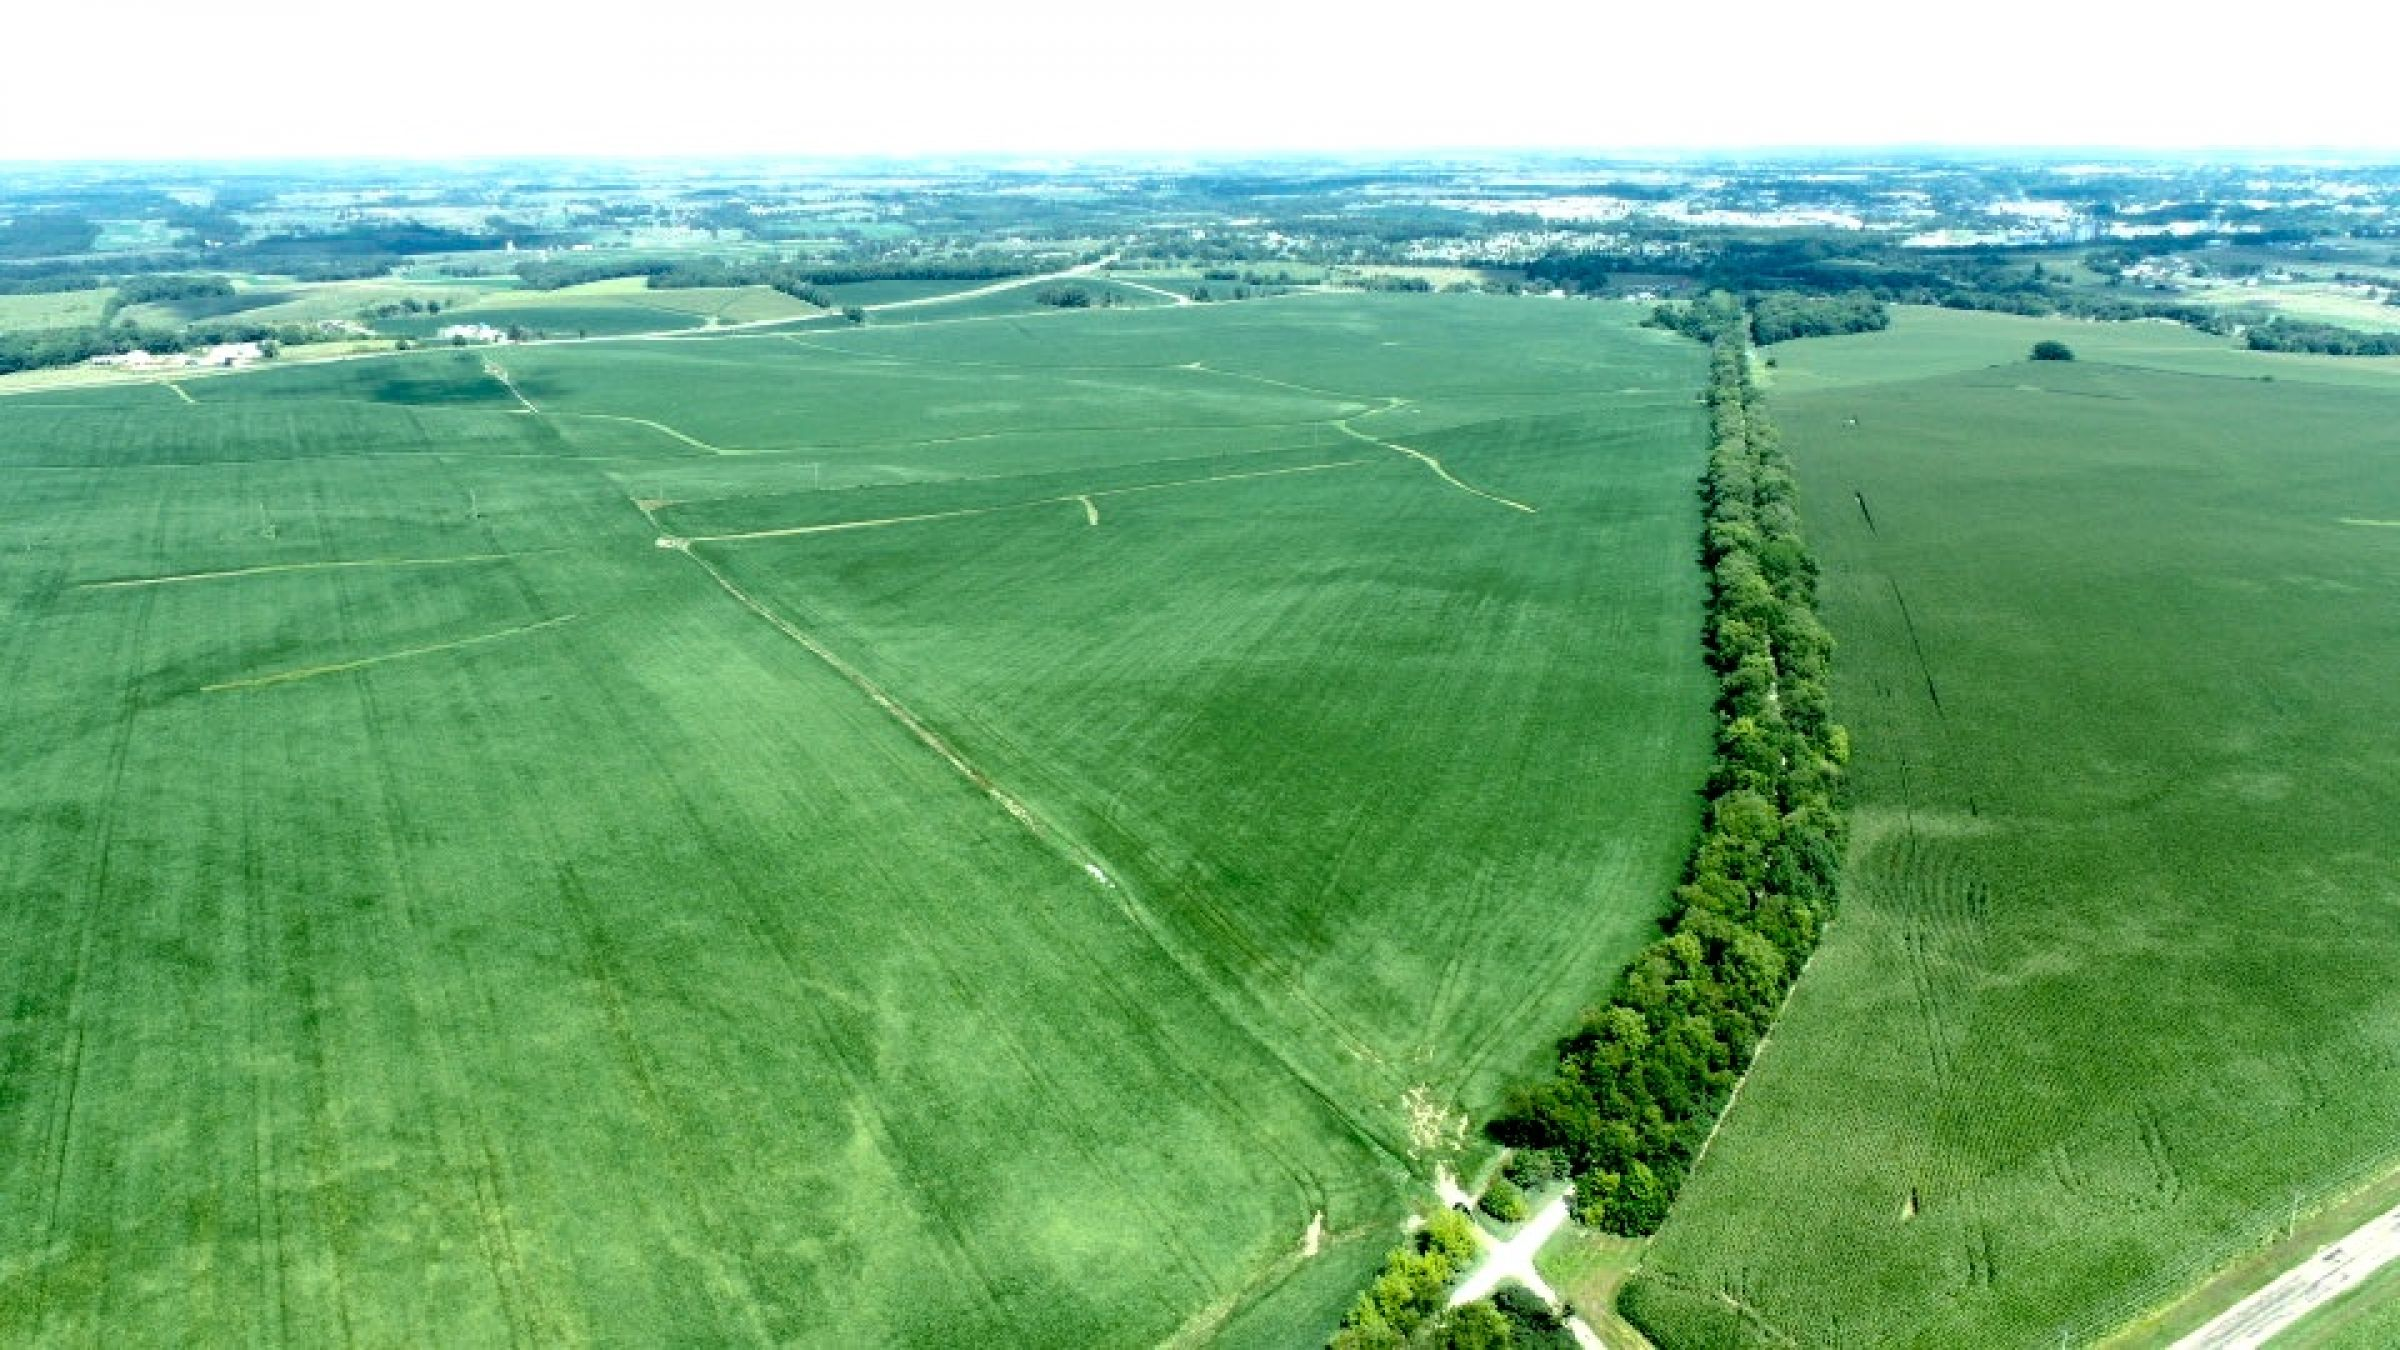 land-green-county-wisconsin-80-acres-listing-number-15692-0-2021-08-19-205610.jpg